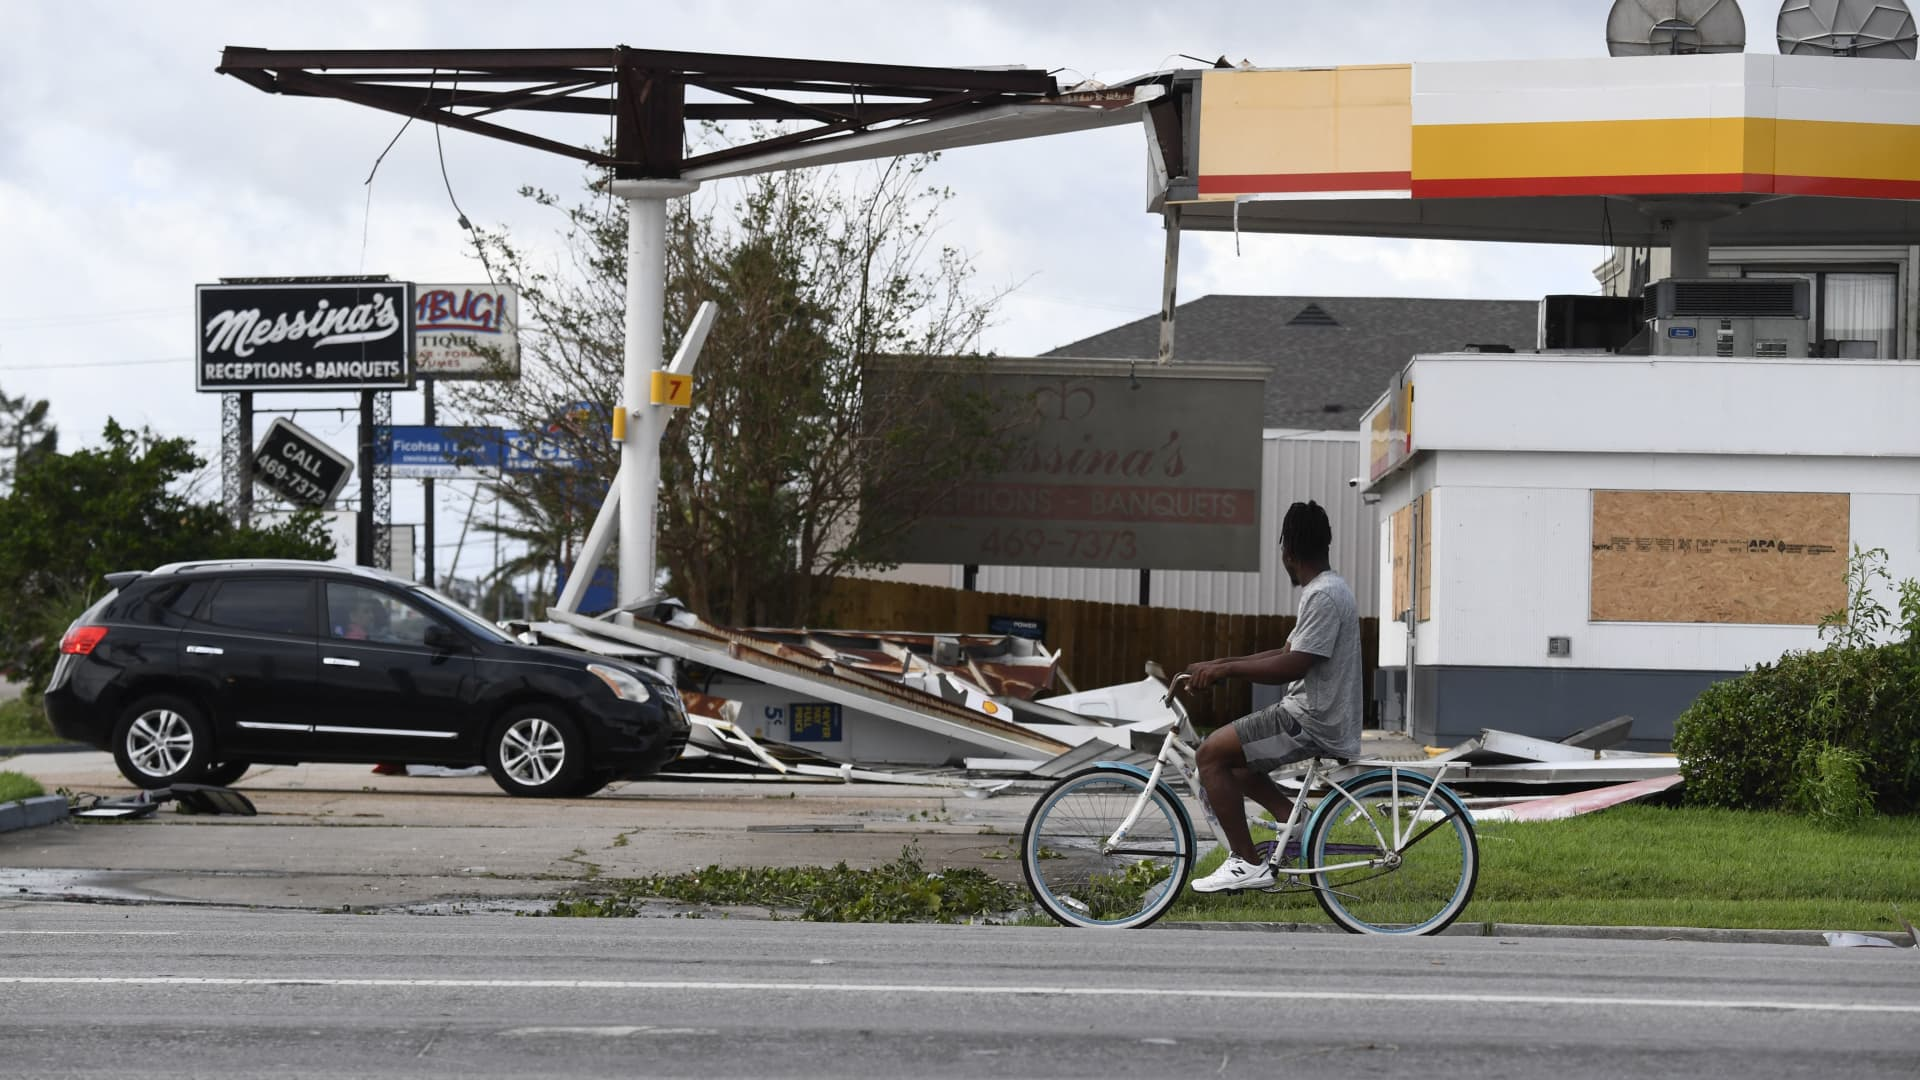 A person on a bicycle passes a damaged Shell station in Kenner, Louisiana, on August 30, 2021 after Hurricane Ida made landfall.